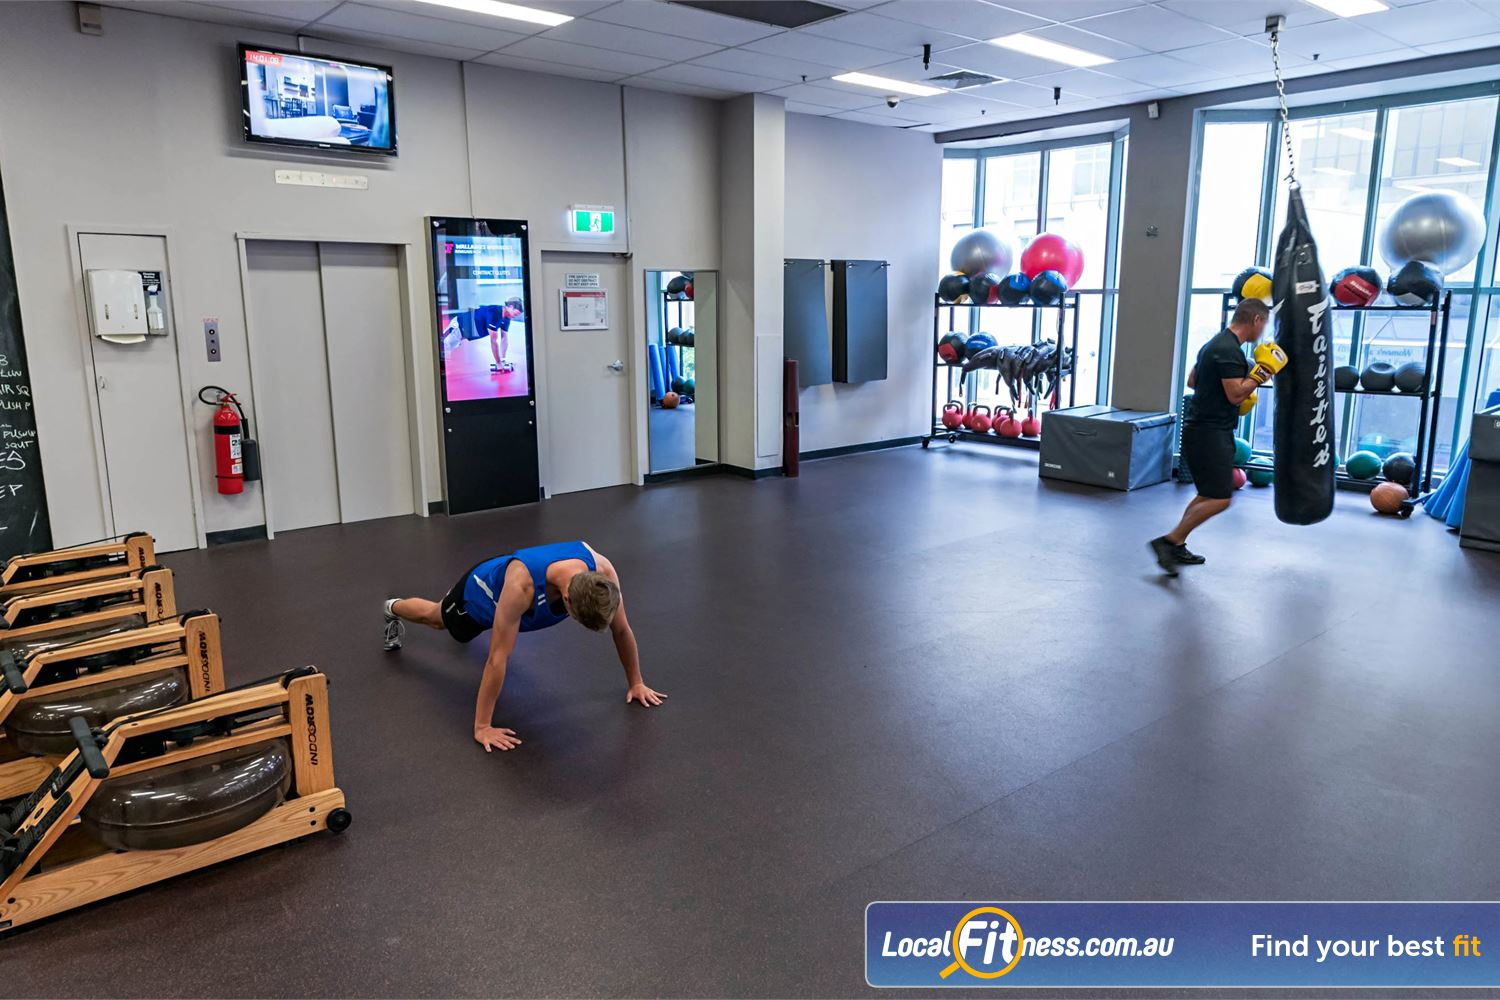 Fitness First Platinum Spring St Bondi Junction The top level is perfect for a boxing or freestyle workout.